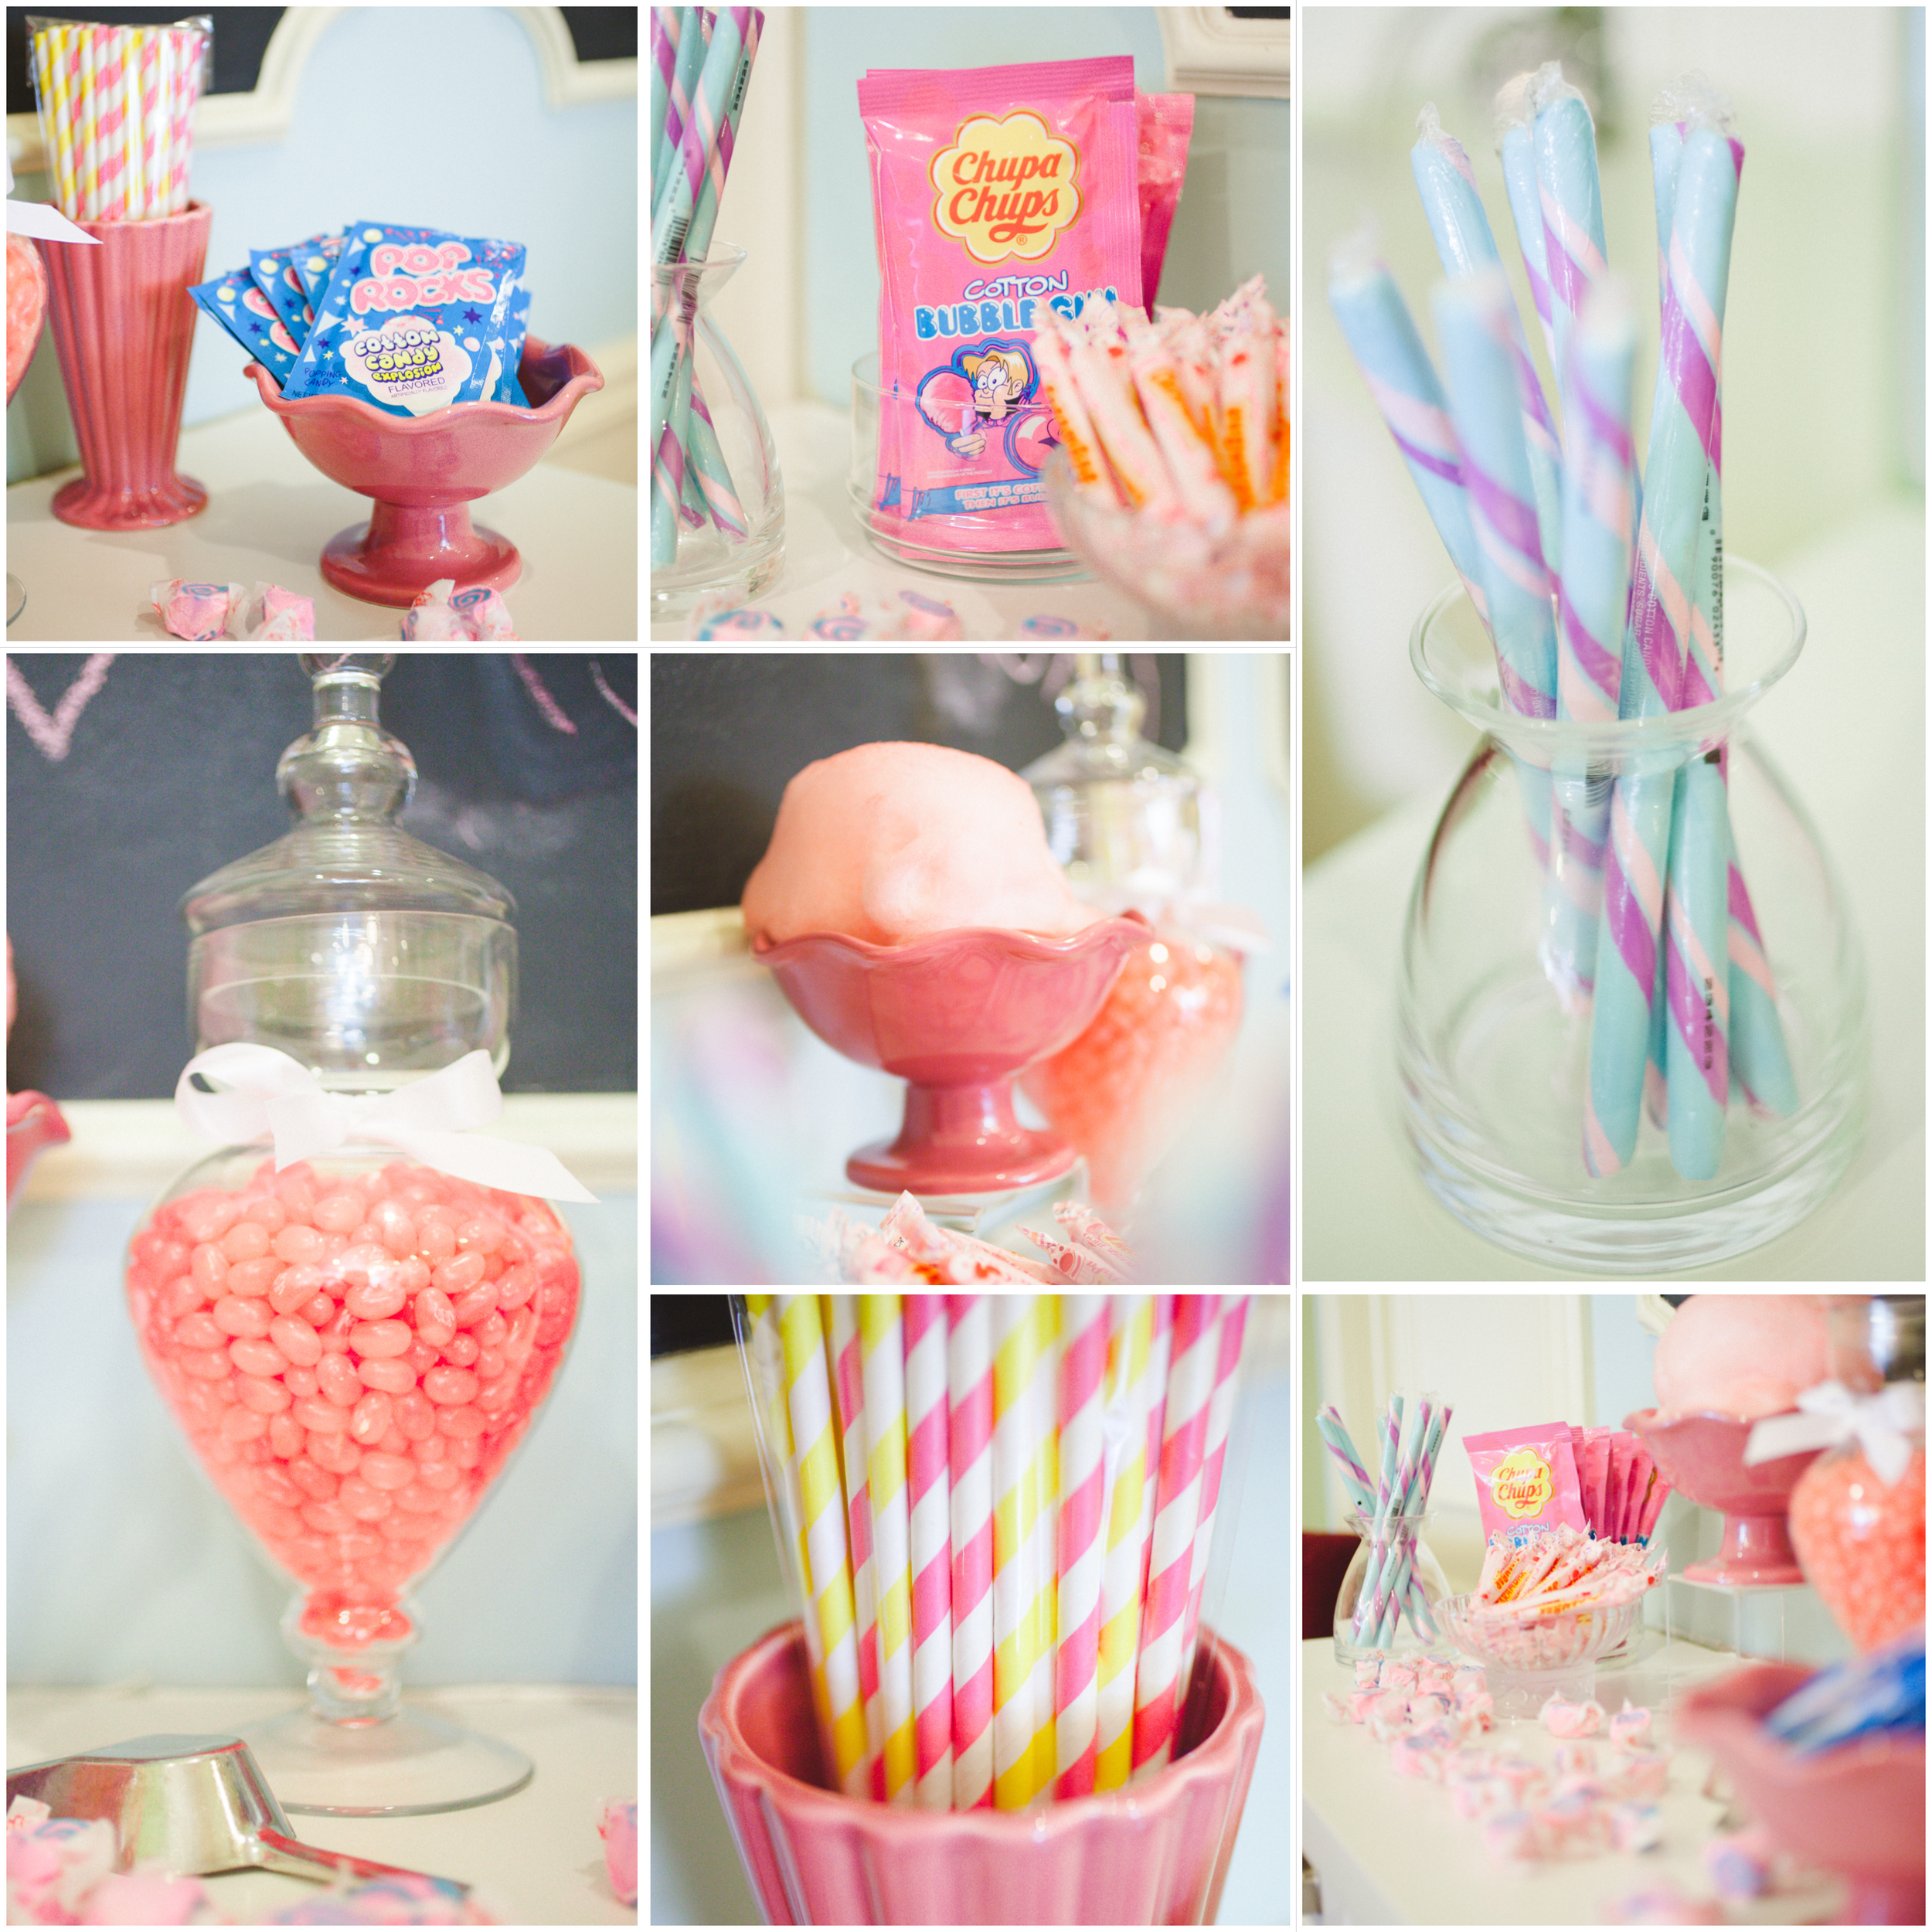 The-Candy-Store_Cotton-Candy.jpg